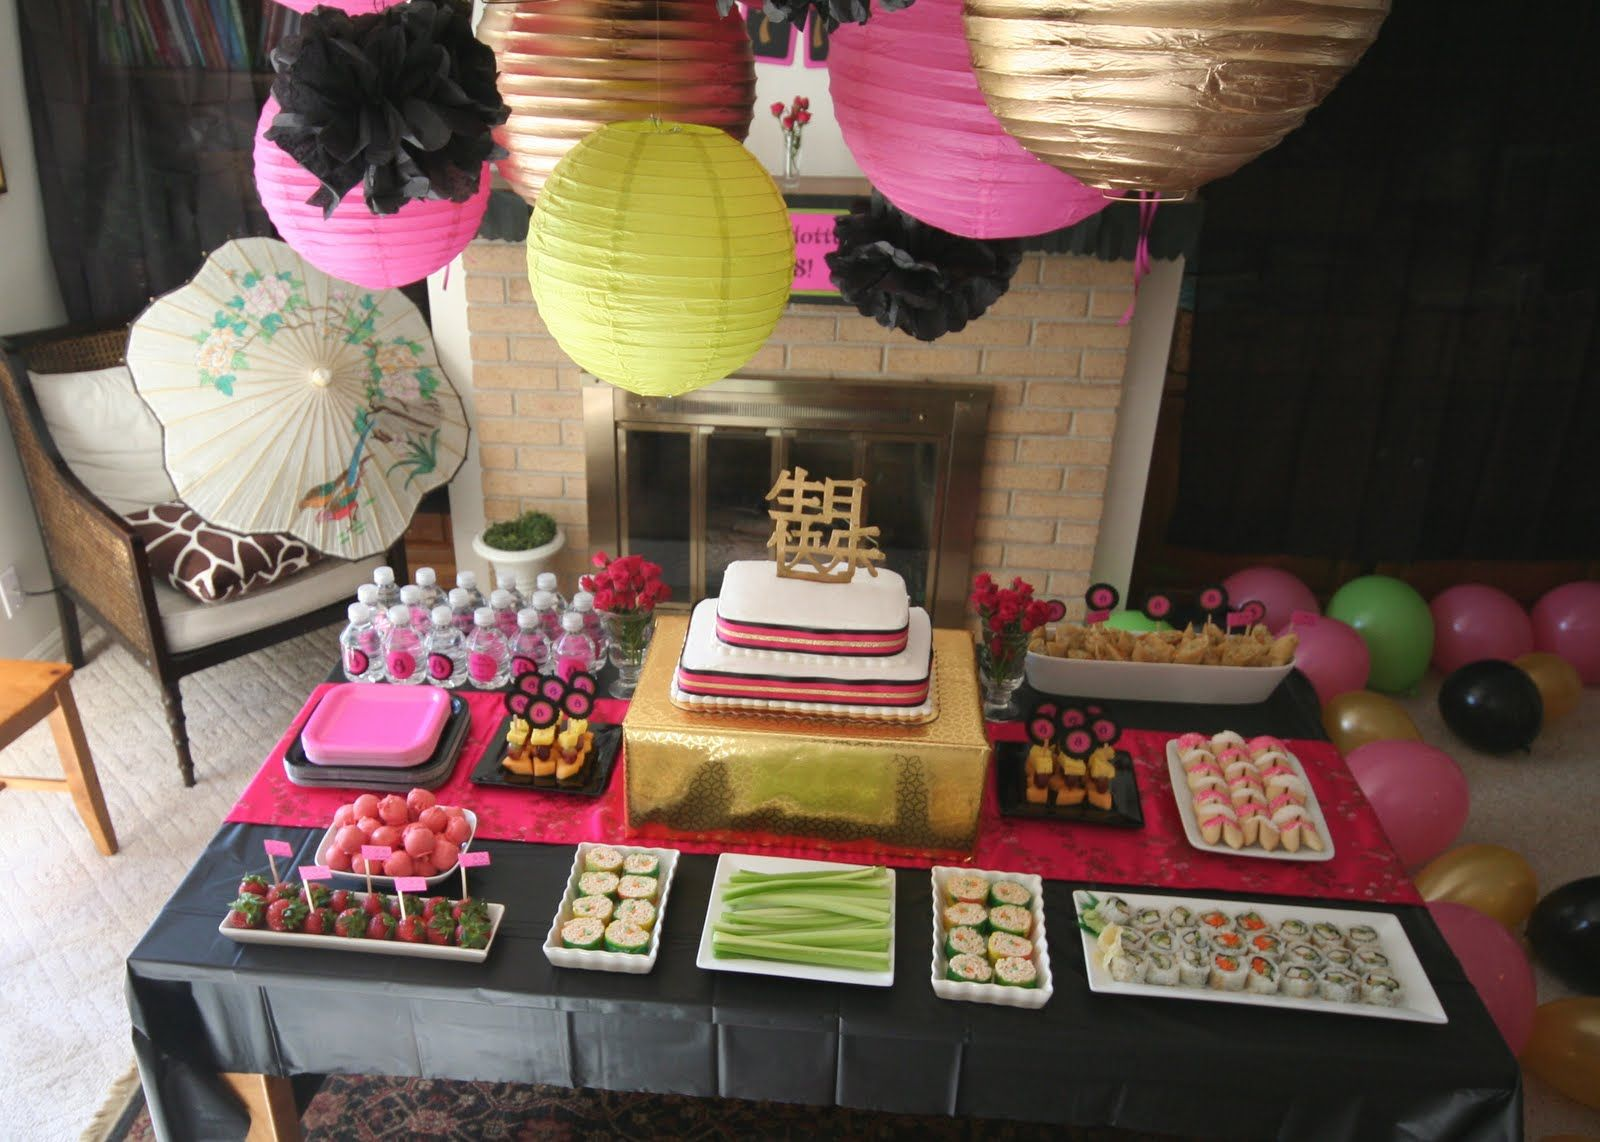 Adult birthday table decorations - Parties Food